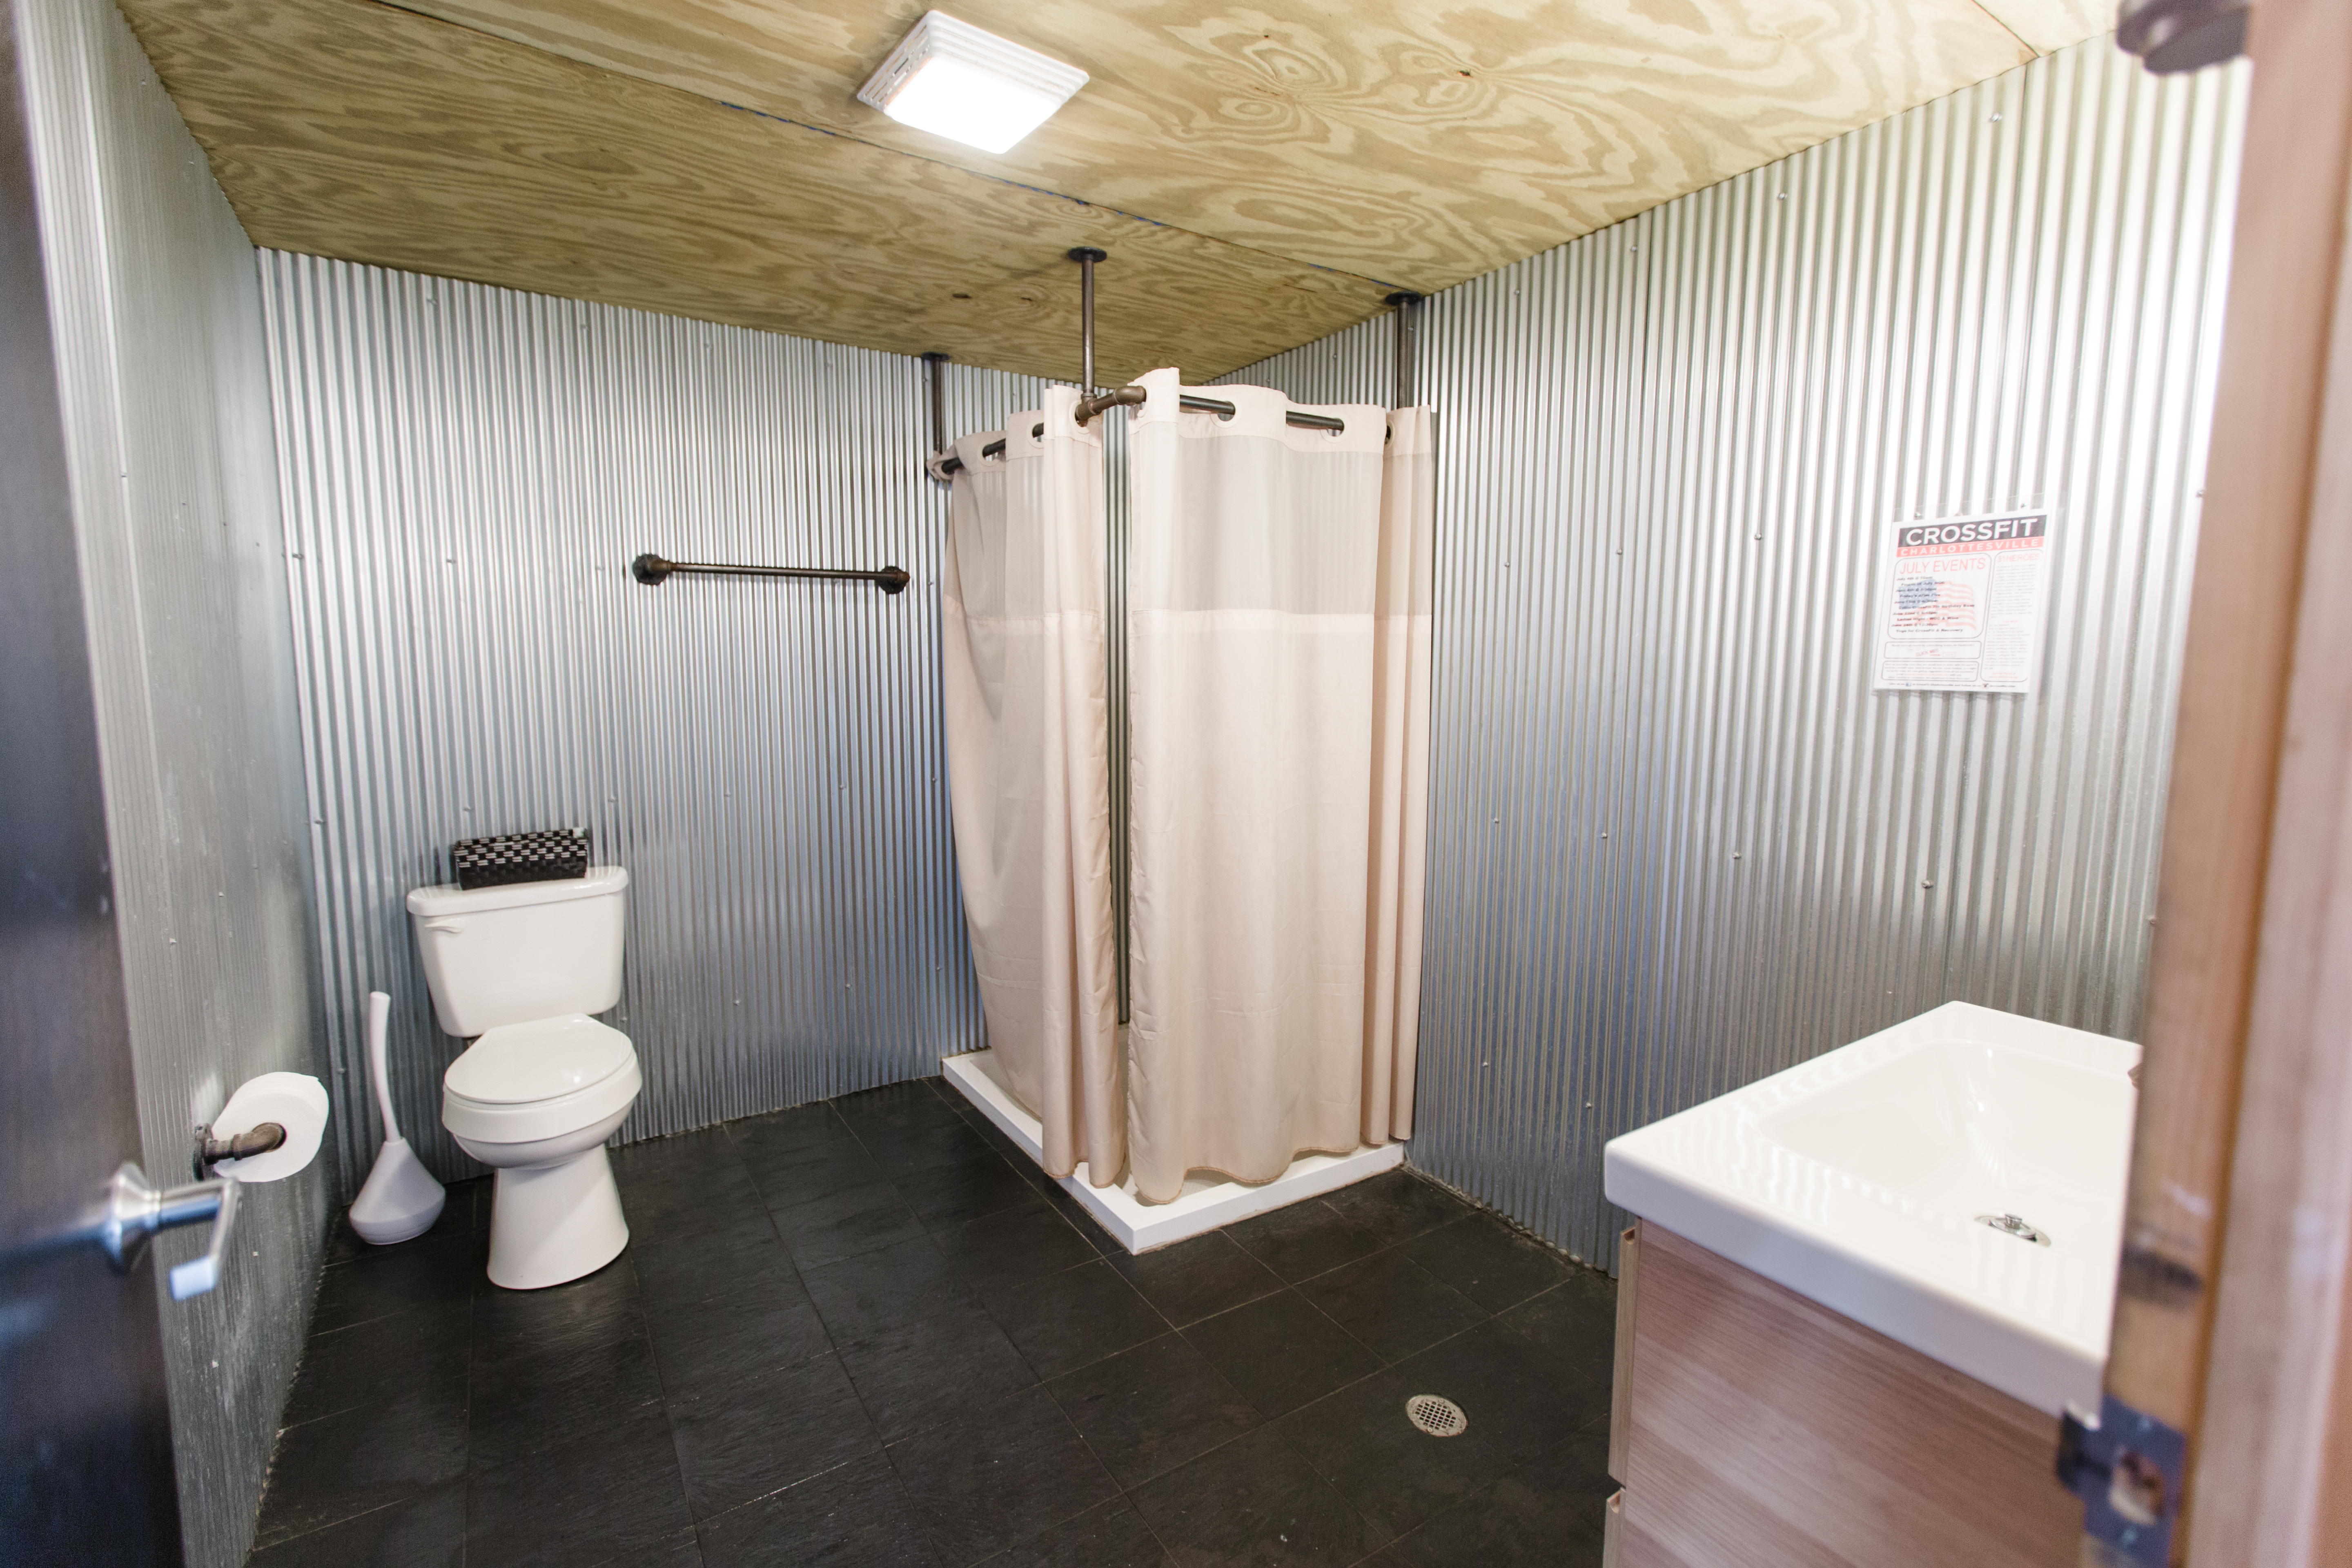 Two Bathrooms, Each With Shower